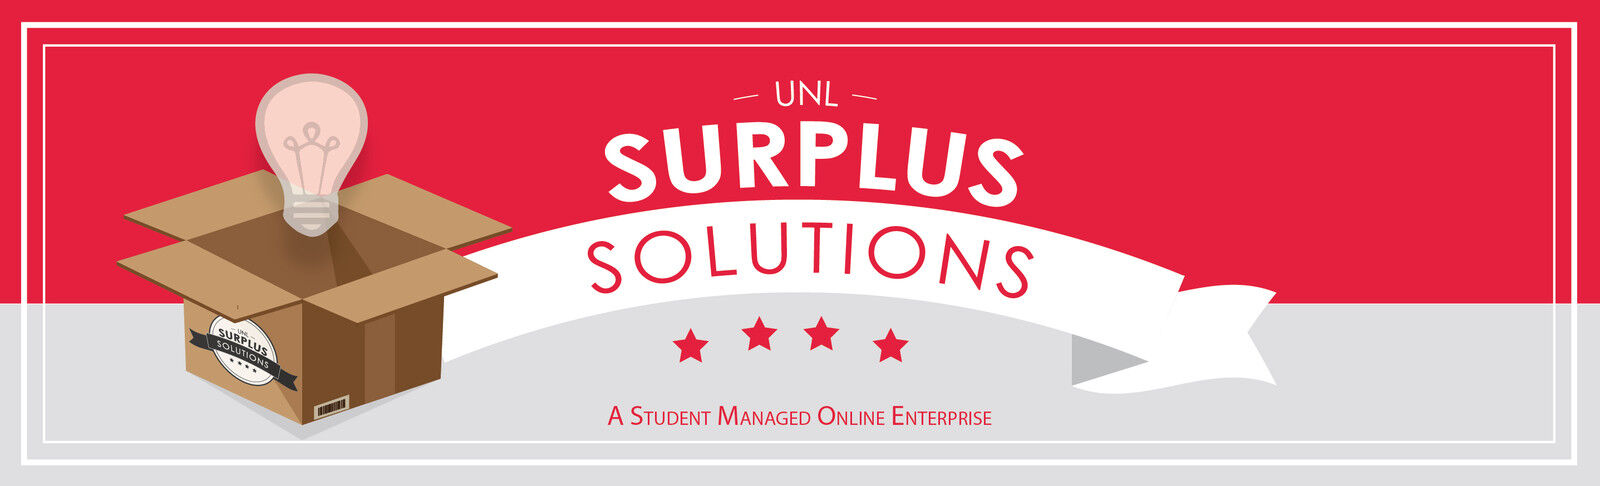 UNL Surplus Solutions